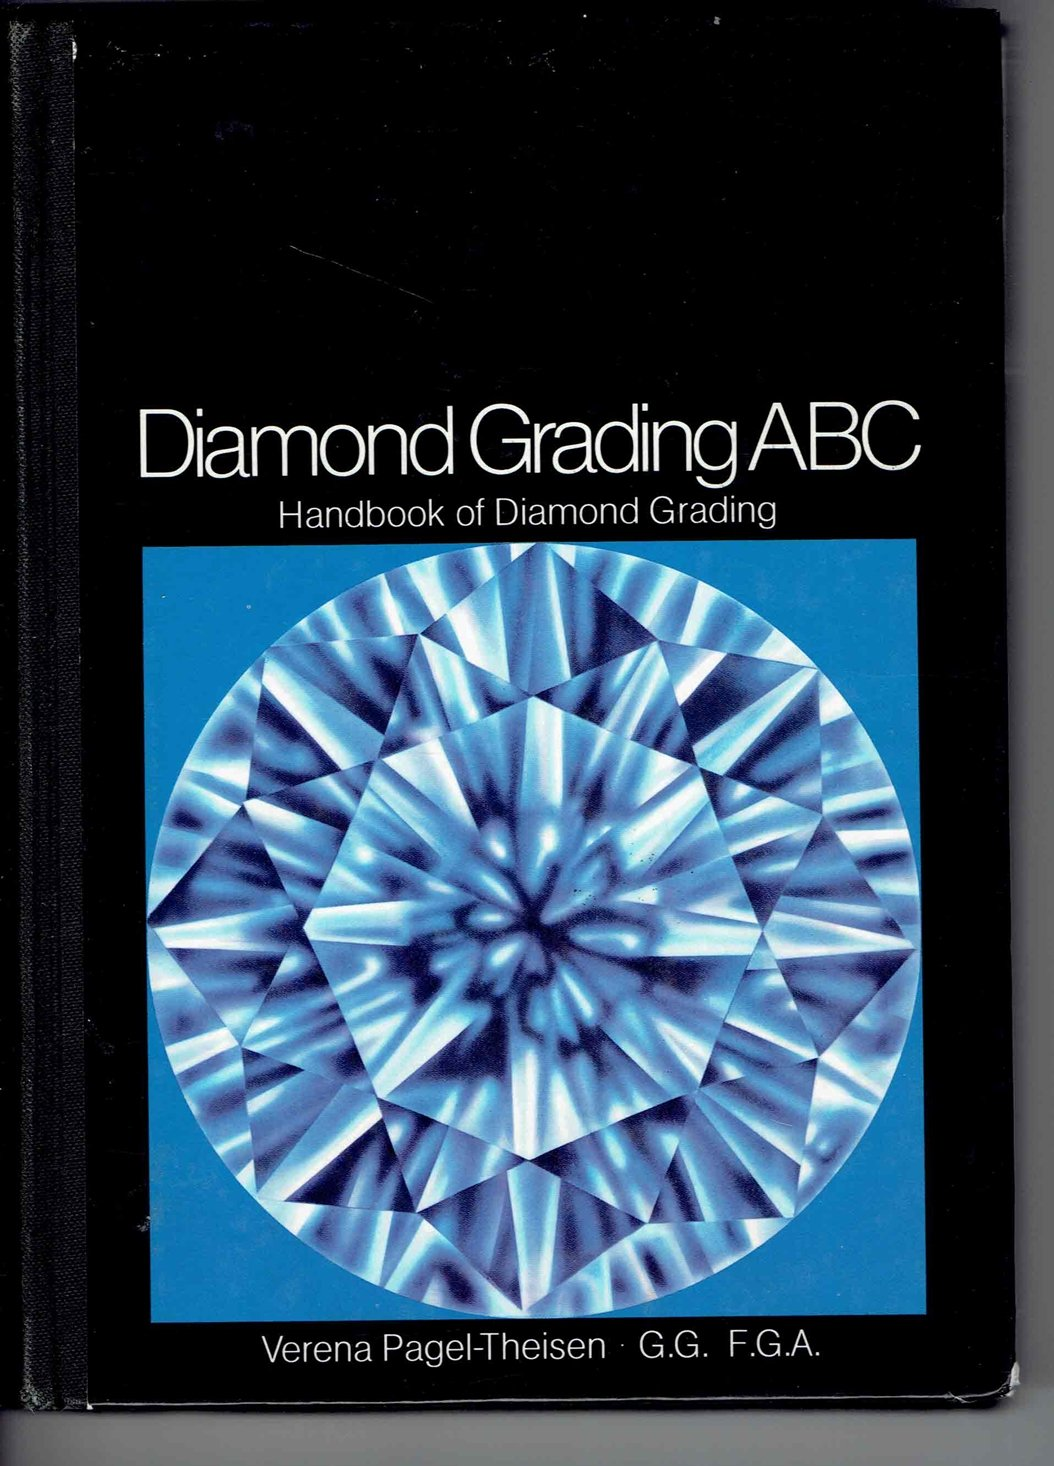 Diamond Grading ABC: Handbook for Diamond Grading: Verena Pagel-Theisen,  Evelyne Stern: 9783980043410: Amazon.com: Books